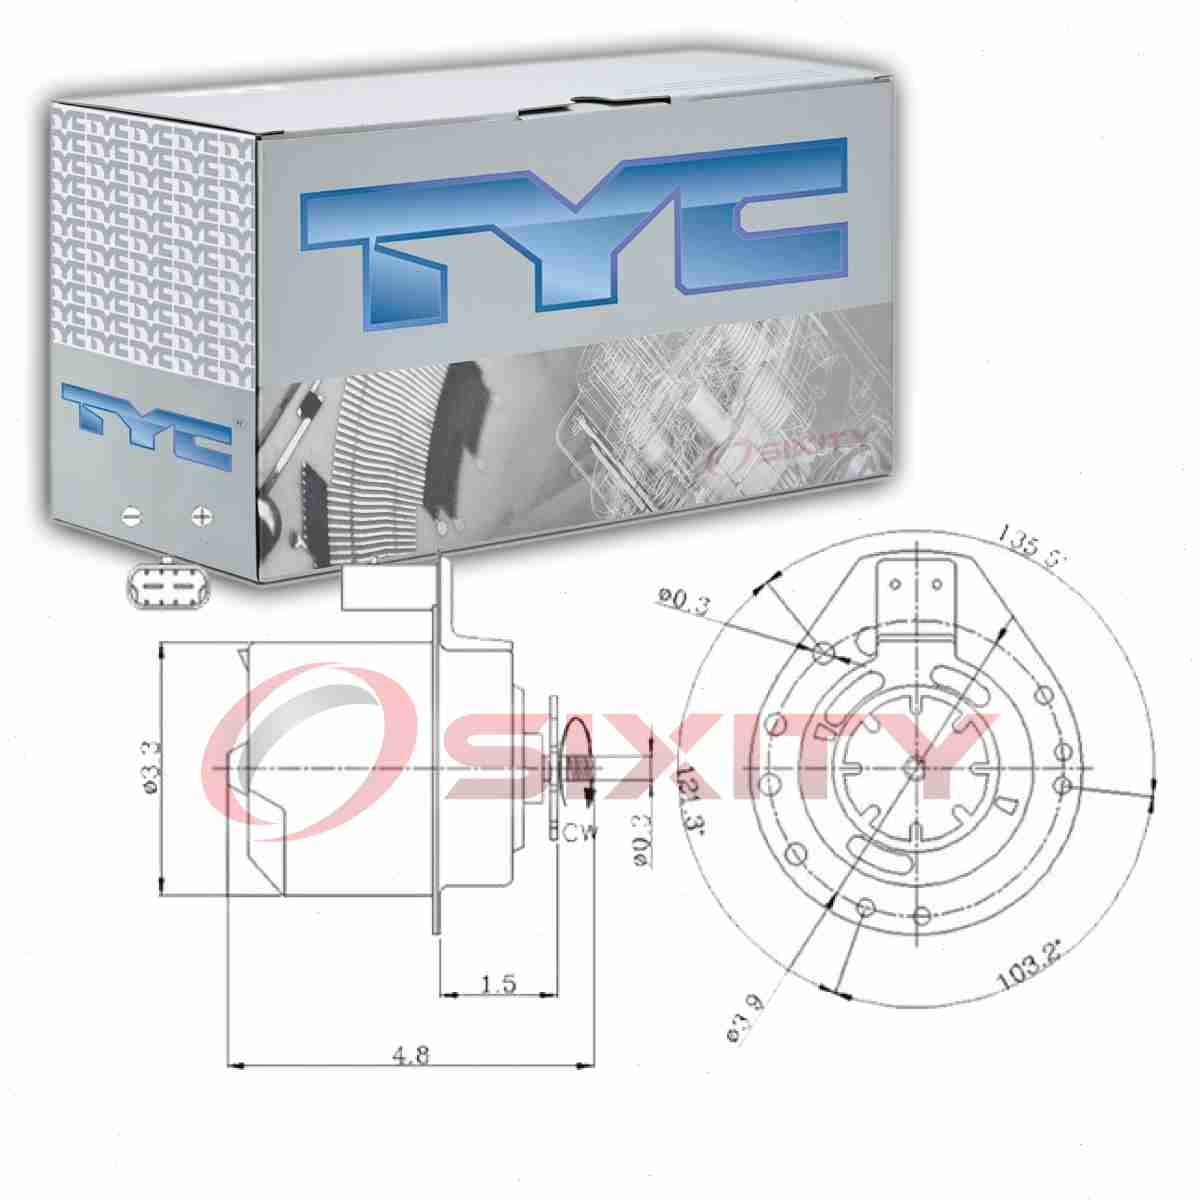 [QMVU_8575]  TYC Left Right Engine Cooling Fan Motor for 1995-1999 Chevrolet Monte Carlo  lt | eBay | 1999 Monte Carlo Engine Diagram |  | eBay